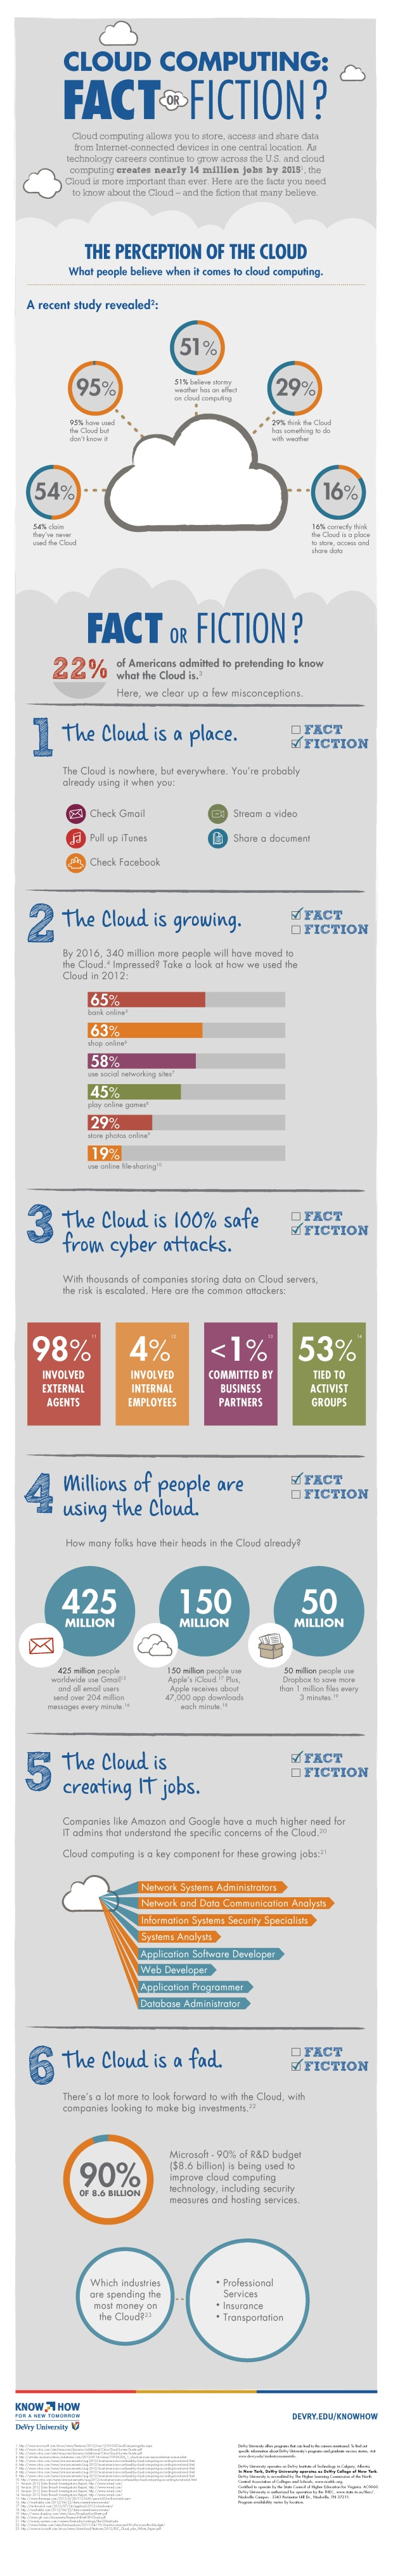 cloud-computing--fact-or-fiction_50e70989a7e6c